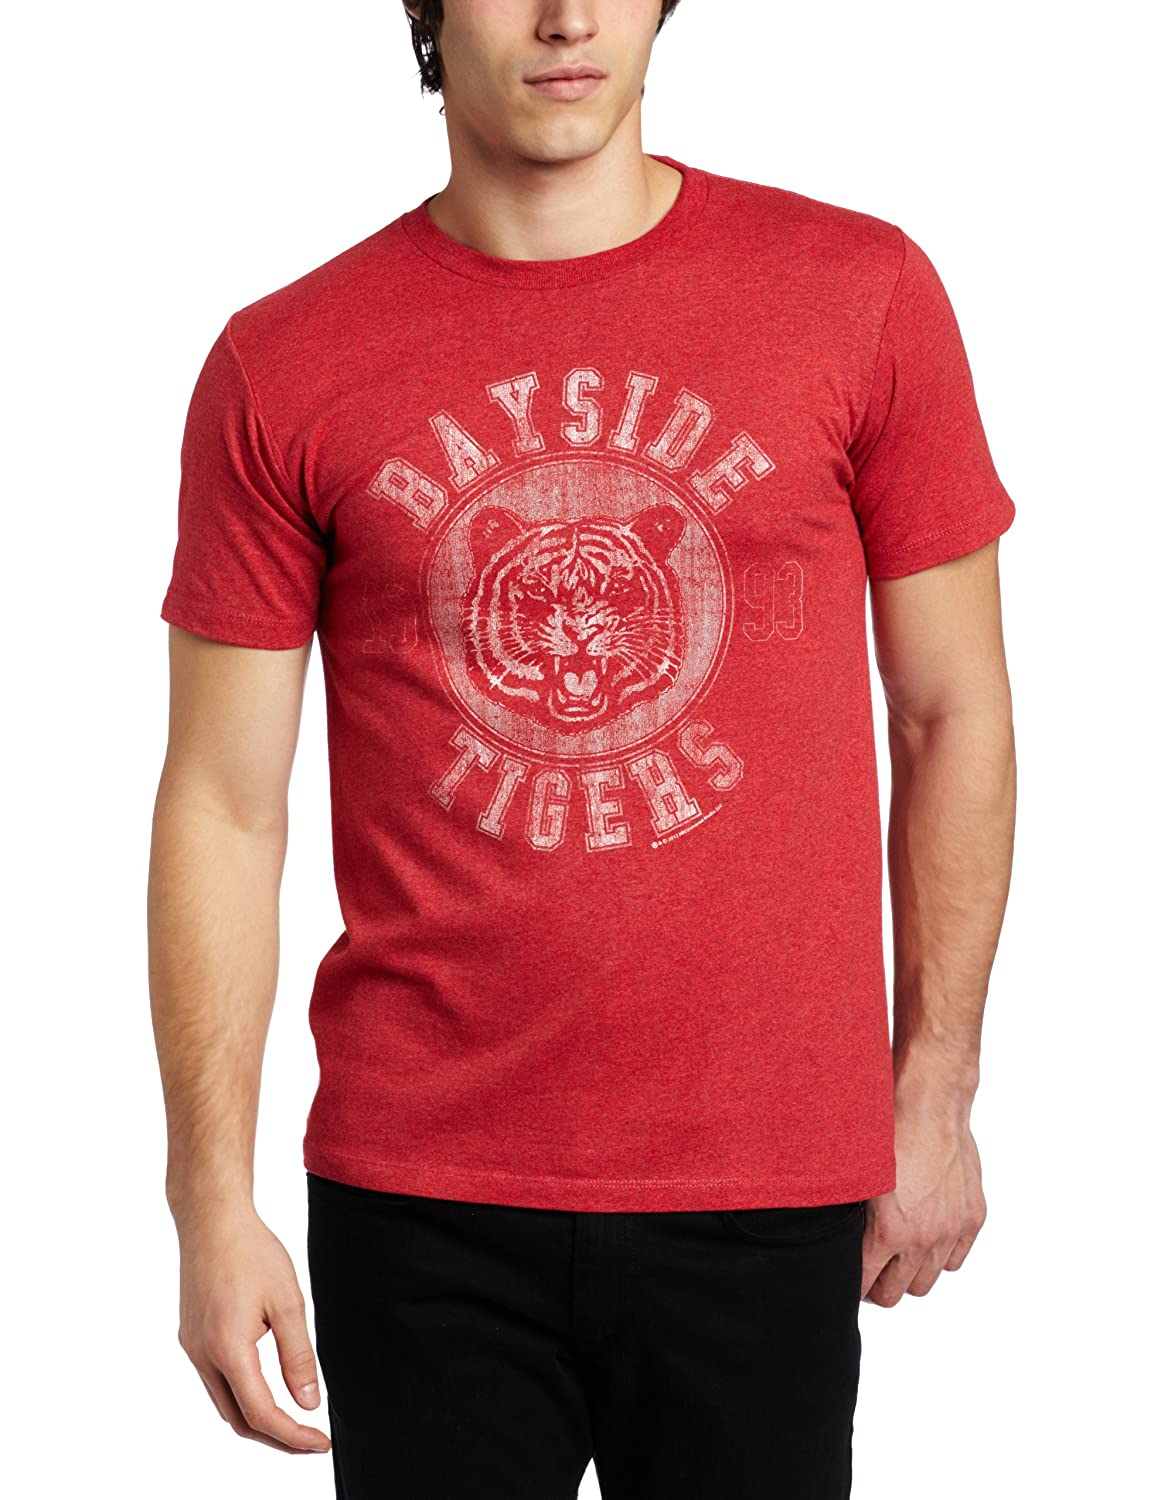 American Classics mens Saved By the Bell Newness T-shirt Red Large SBB573